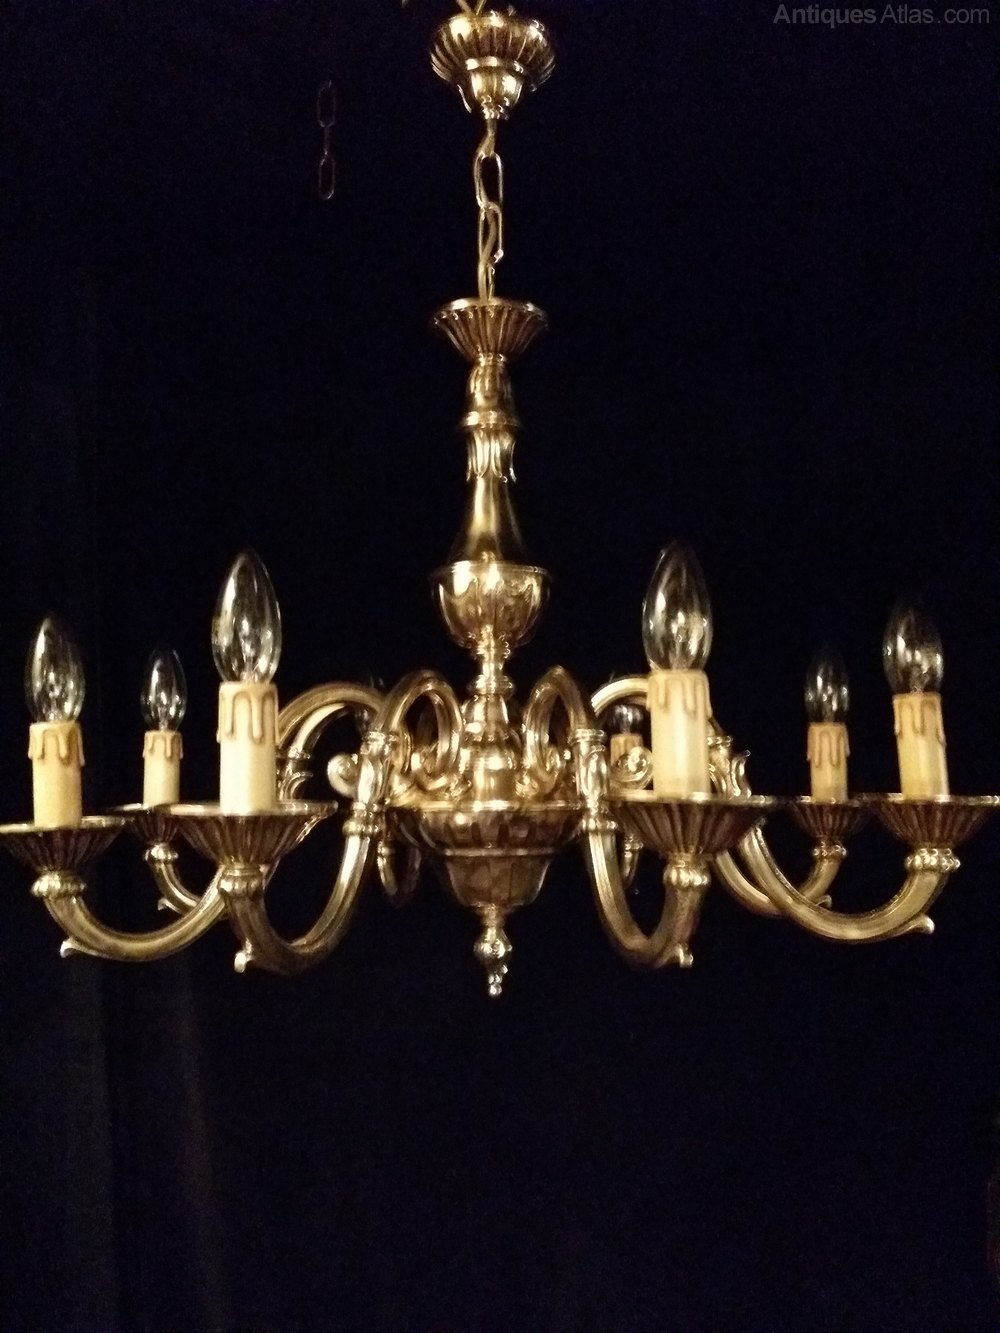 Antiques Atlas Antique Brass Chandelier